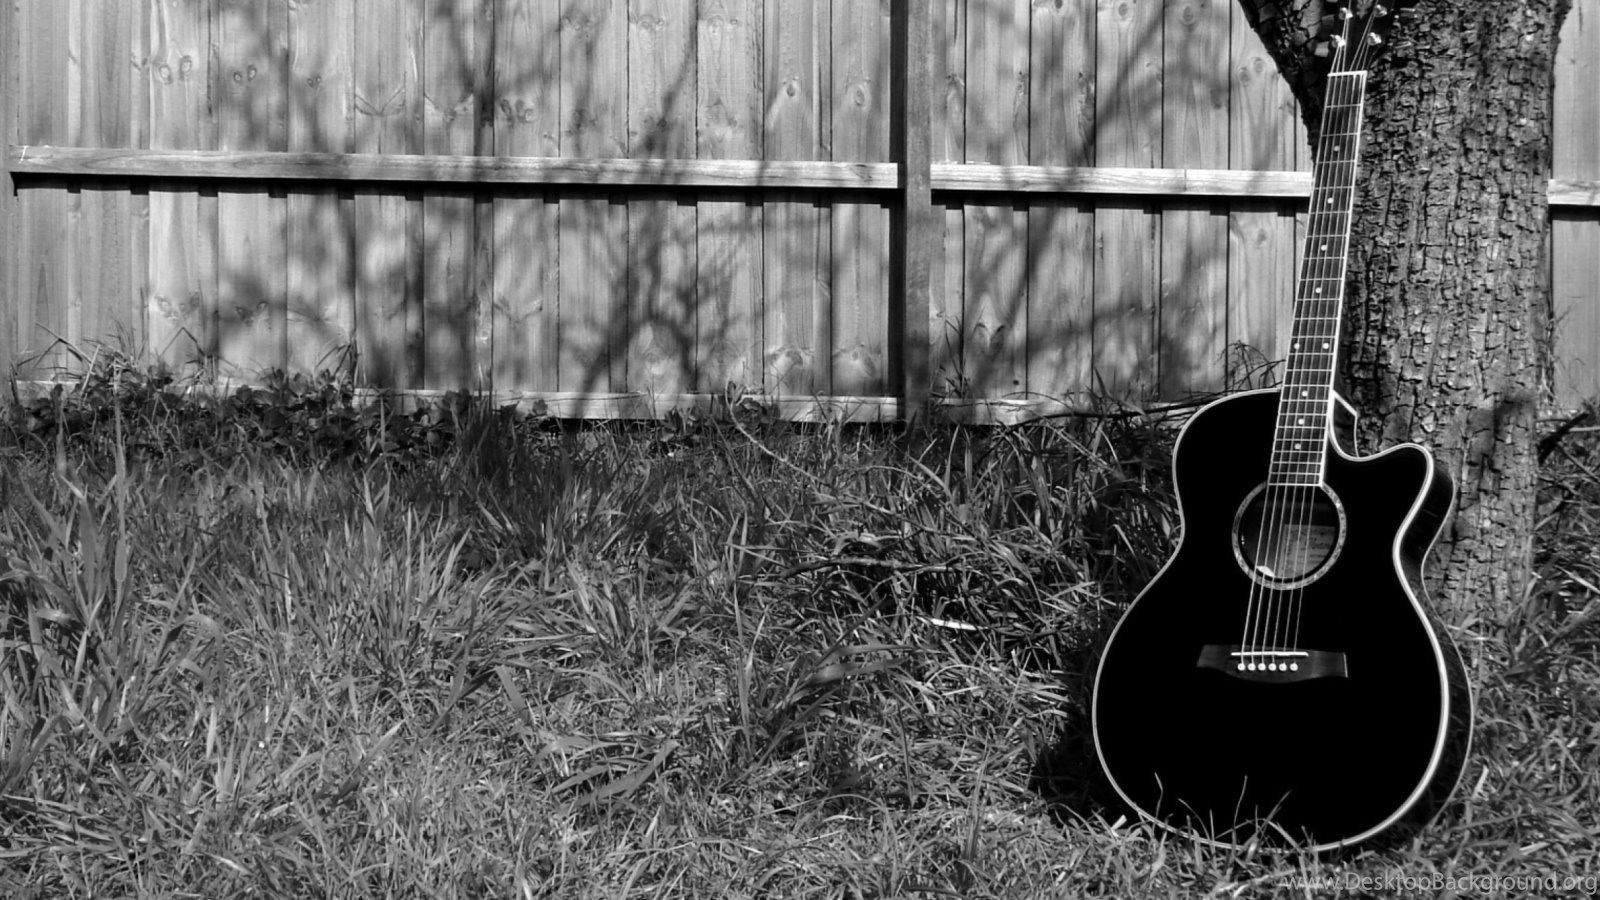 Guitar Wallpaper For My Desktop 1600x900 Black And White Guitar 110808 Hd Wallpaper Backgrounds Download